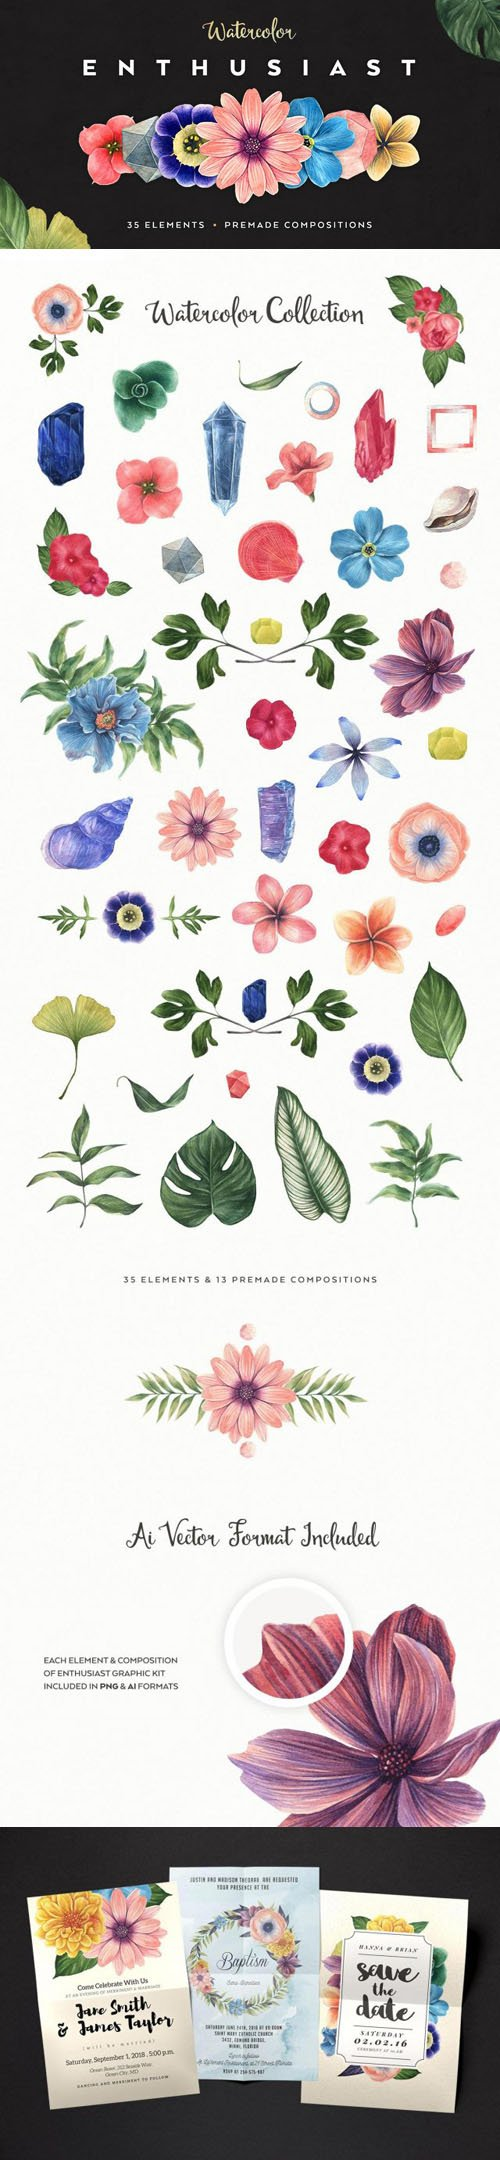 Watercolor Enthusiast Vector Graphic Pack - Premade Compositions